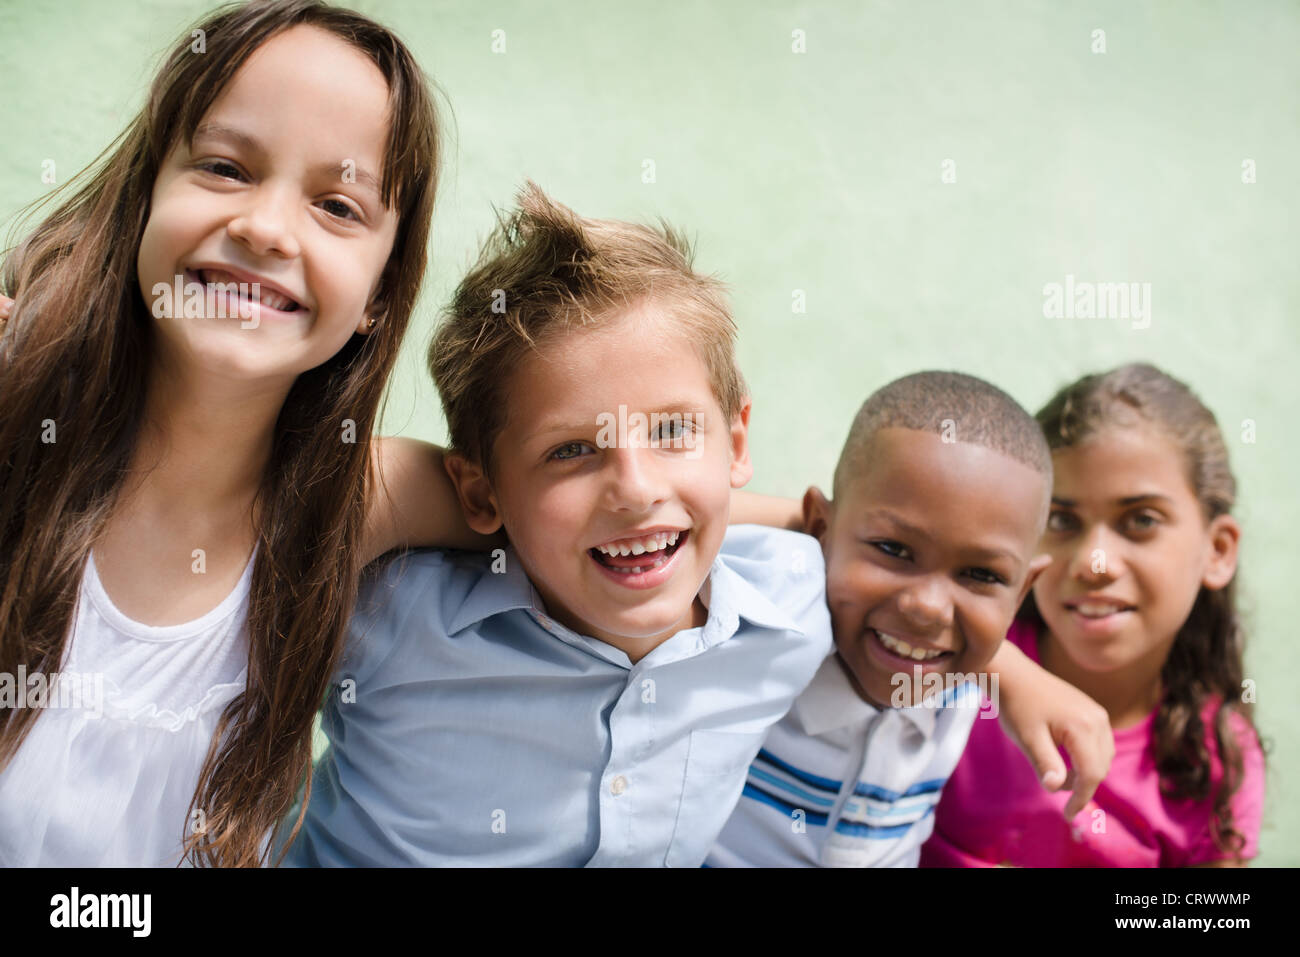 Group of happy children smiling, embracing and looking at camera. Copy space - Stock Image